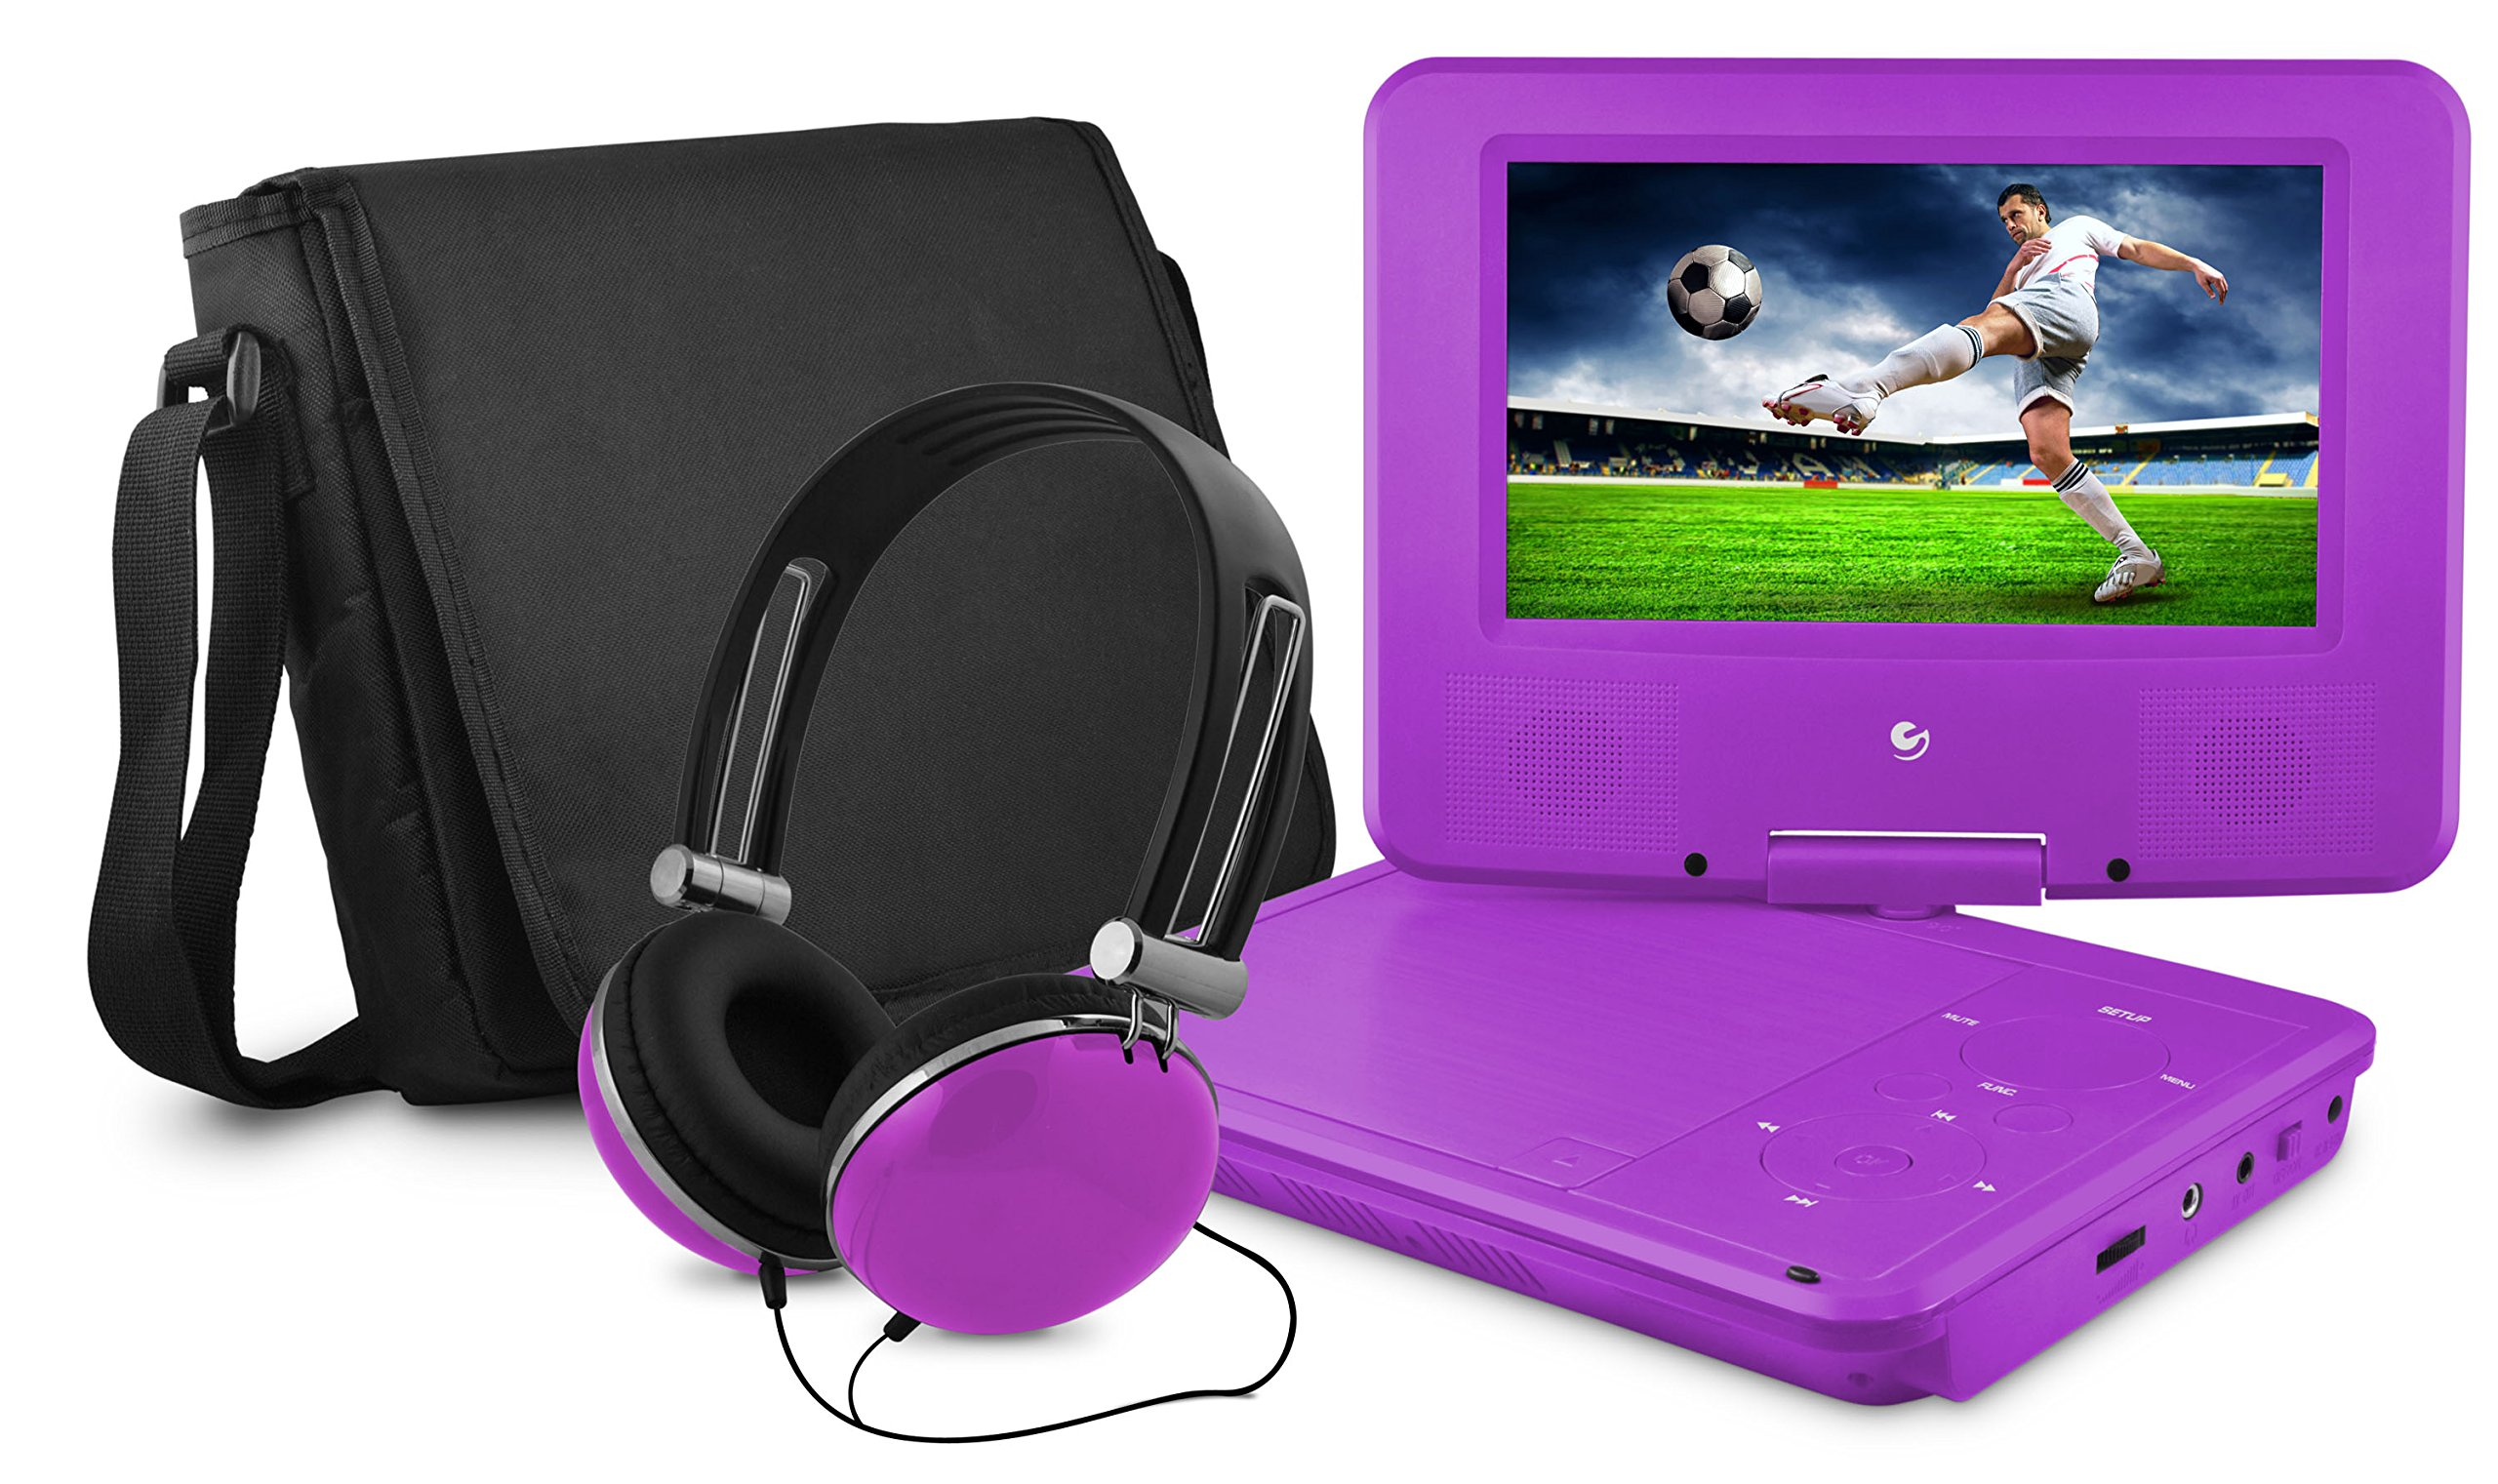 Ematic Personal DVD Player with 7-Inch Swivel Screen, Headphones, Carrying Case, Purple